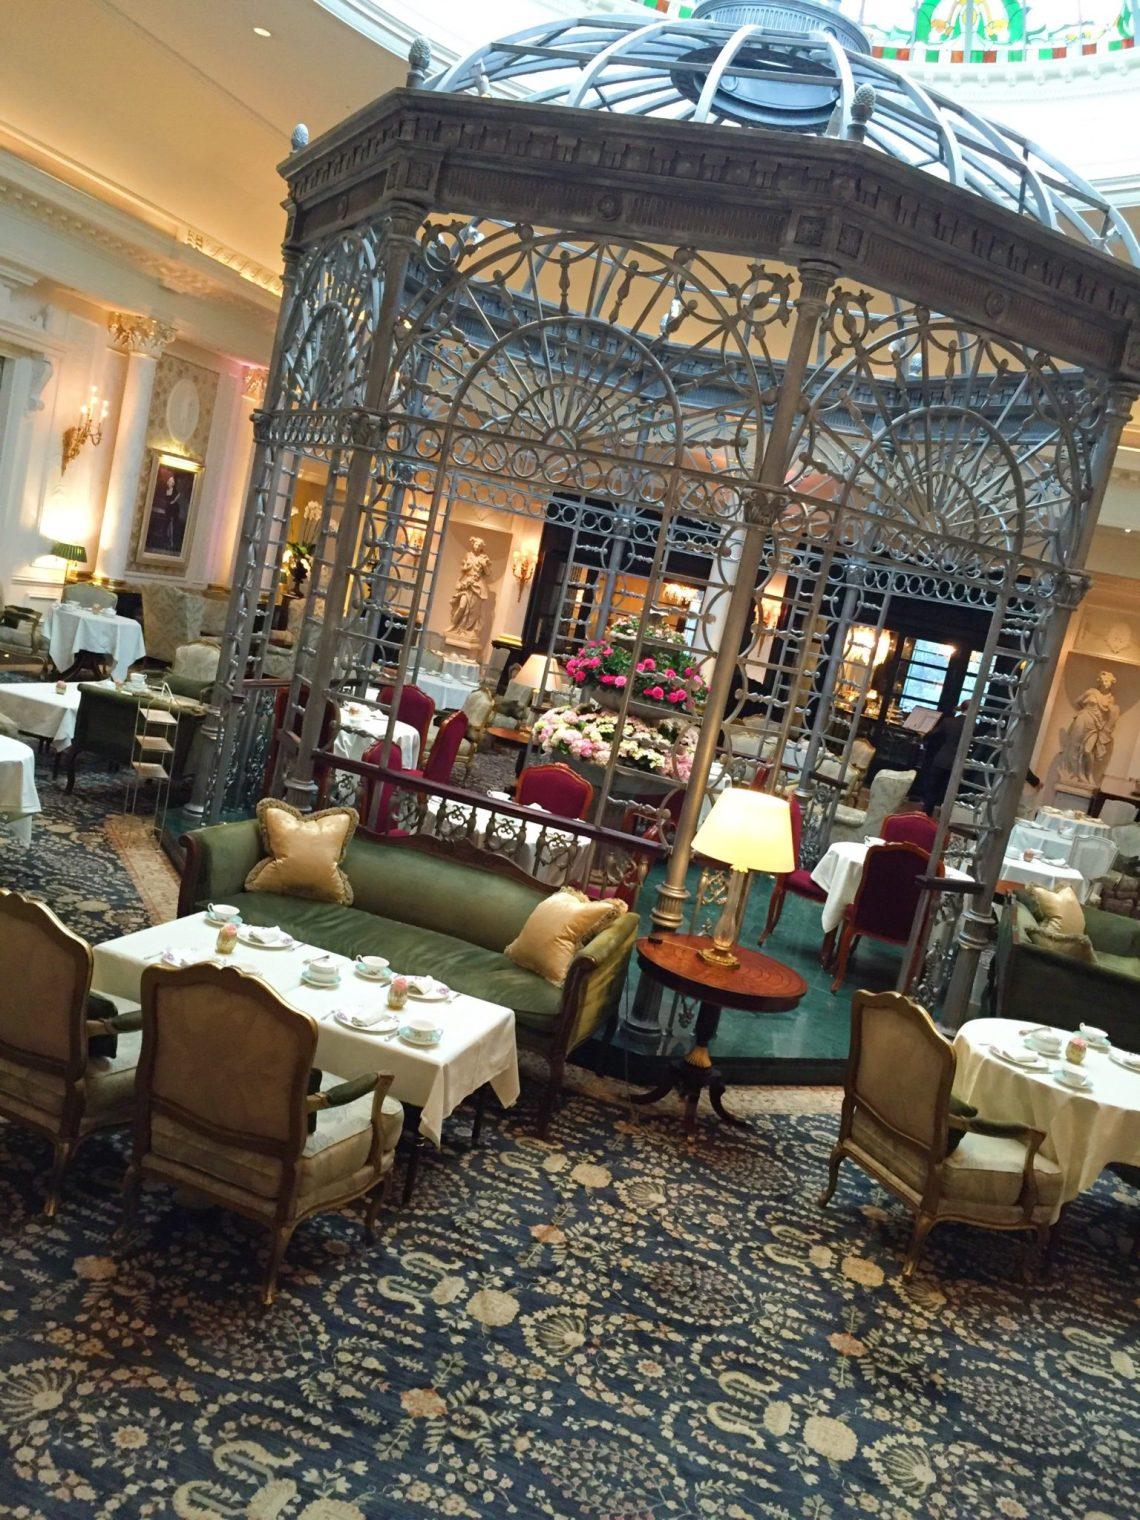 Thames Foyer Savoy Hotel : Afternoon tea at the savoy london planes trains and